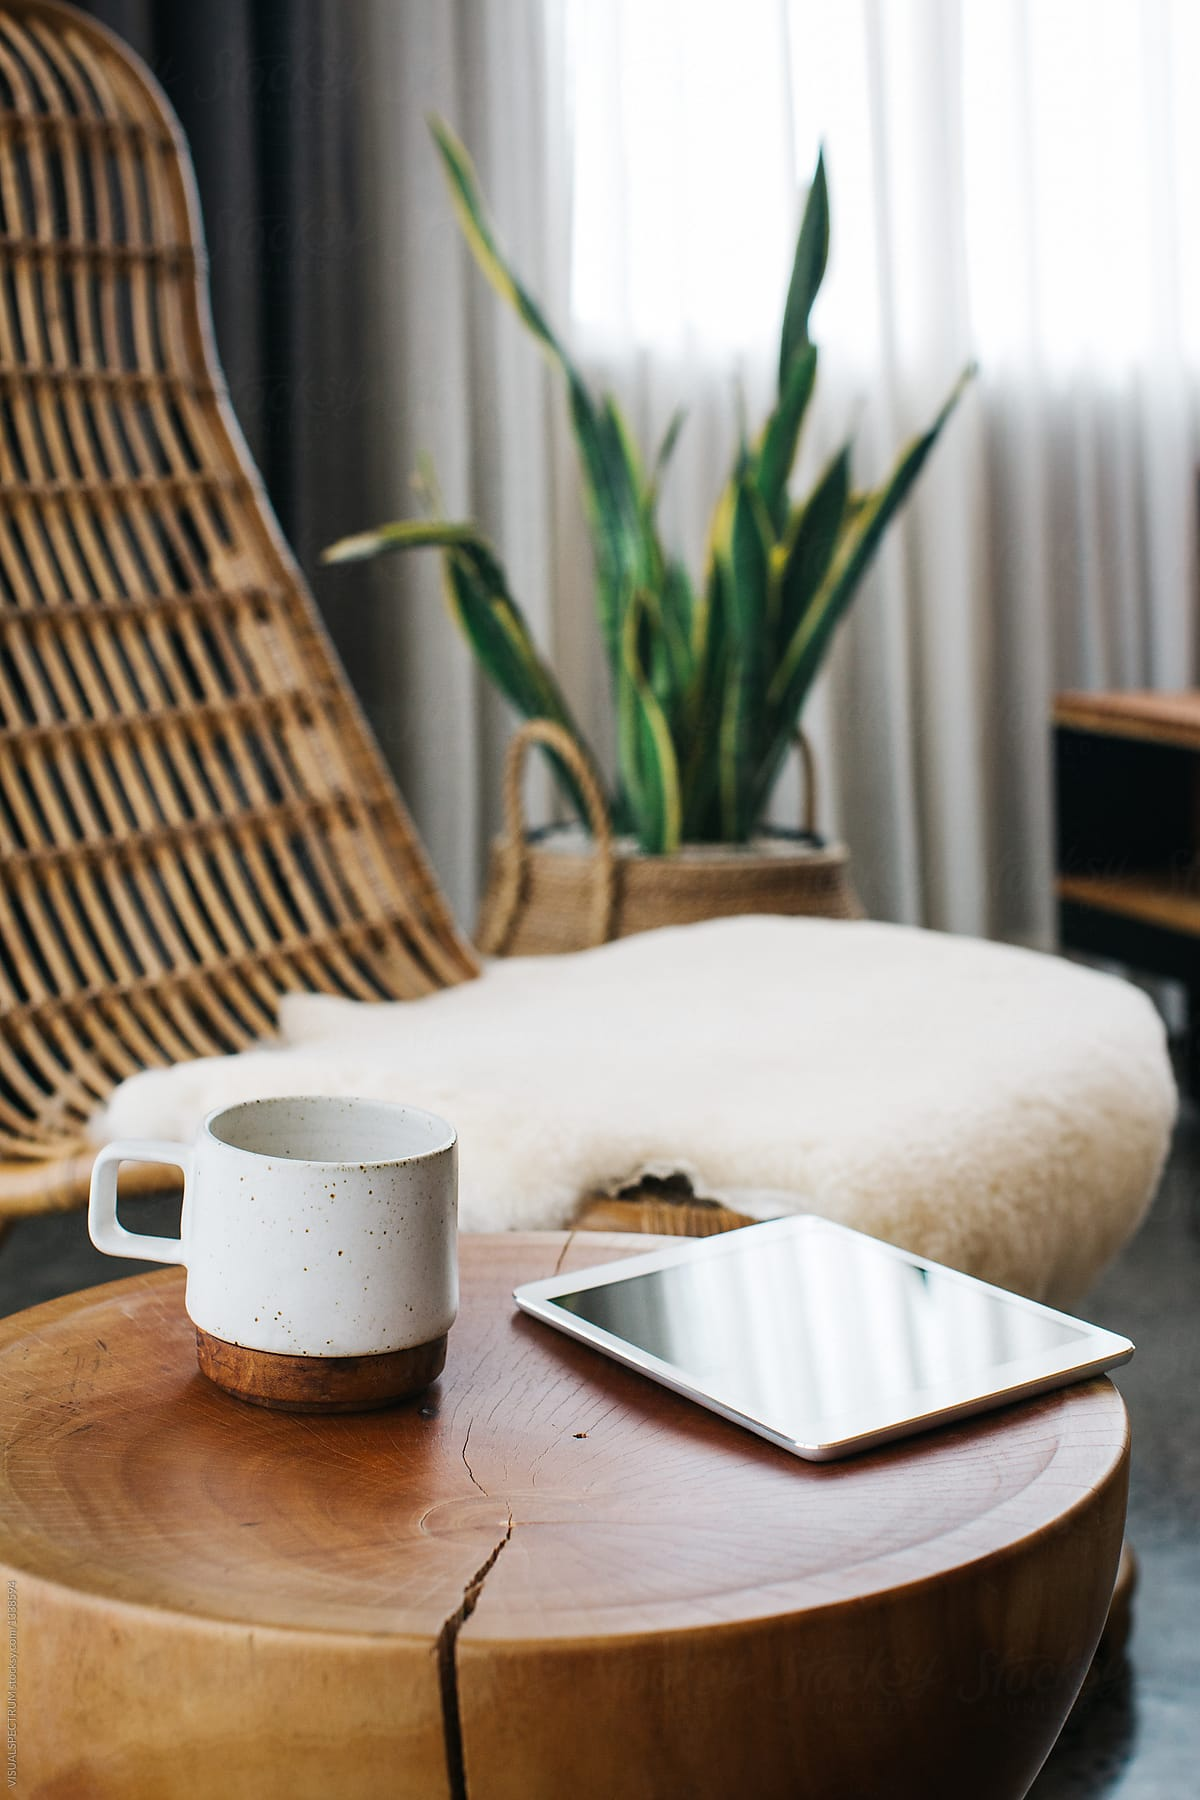 Digital Tablet And Ceramic Mug Standing On Coffee Table In Stylish Living  Room by VISUALSPECTRUM - Mug, Tablet